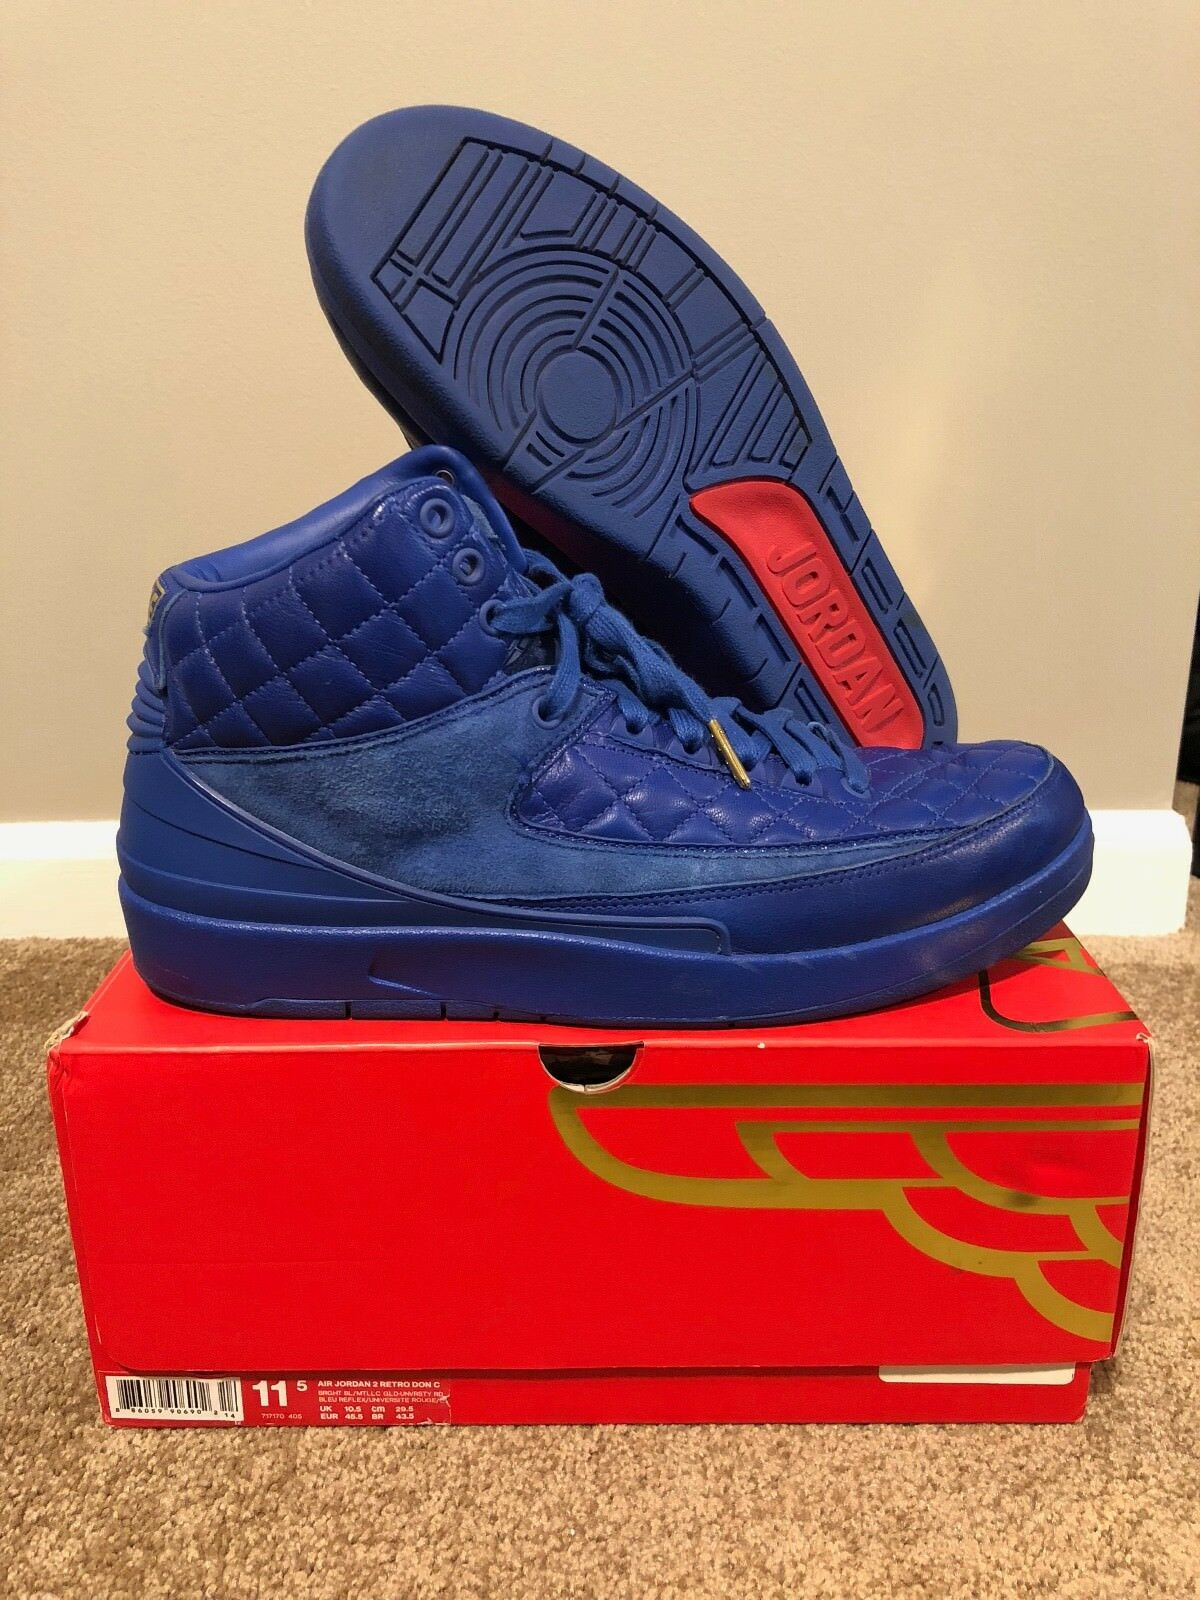 Air Jordan 2  Just Don C bluee  717170-405 Size 11.5 USED